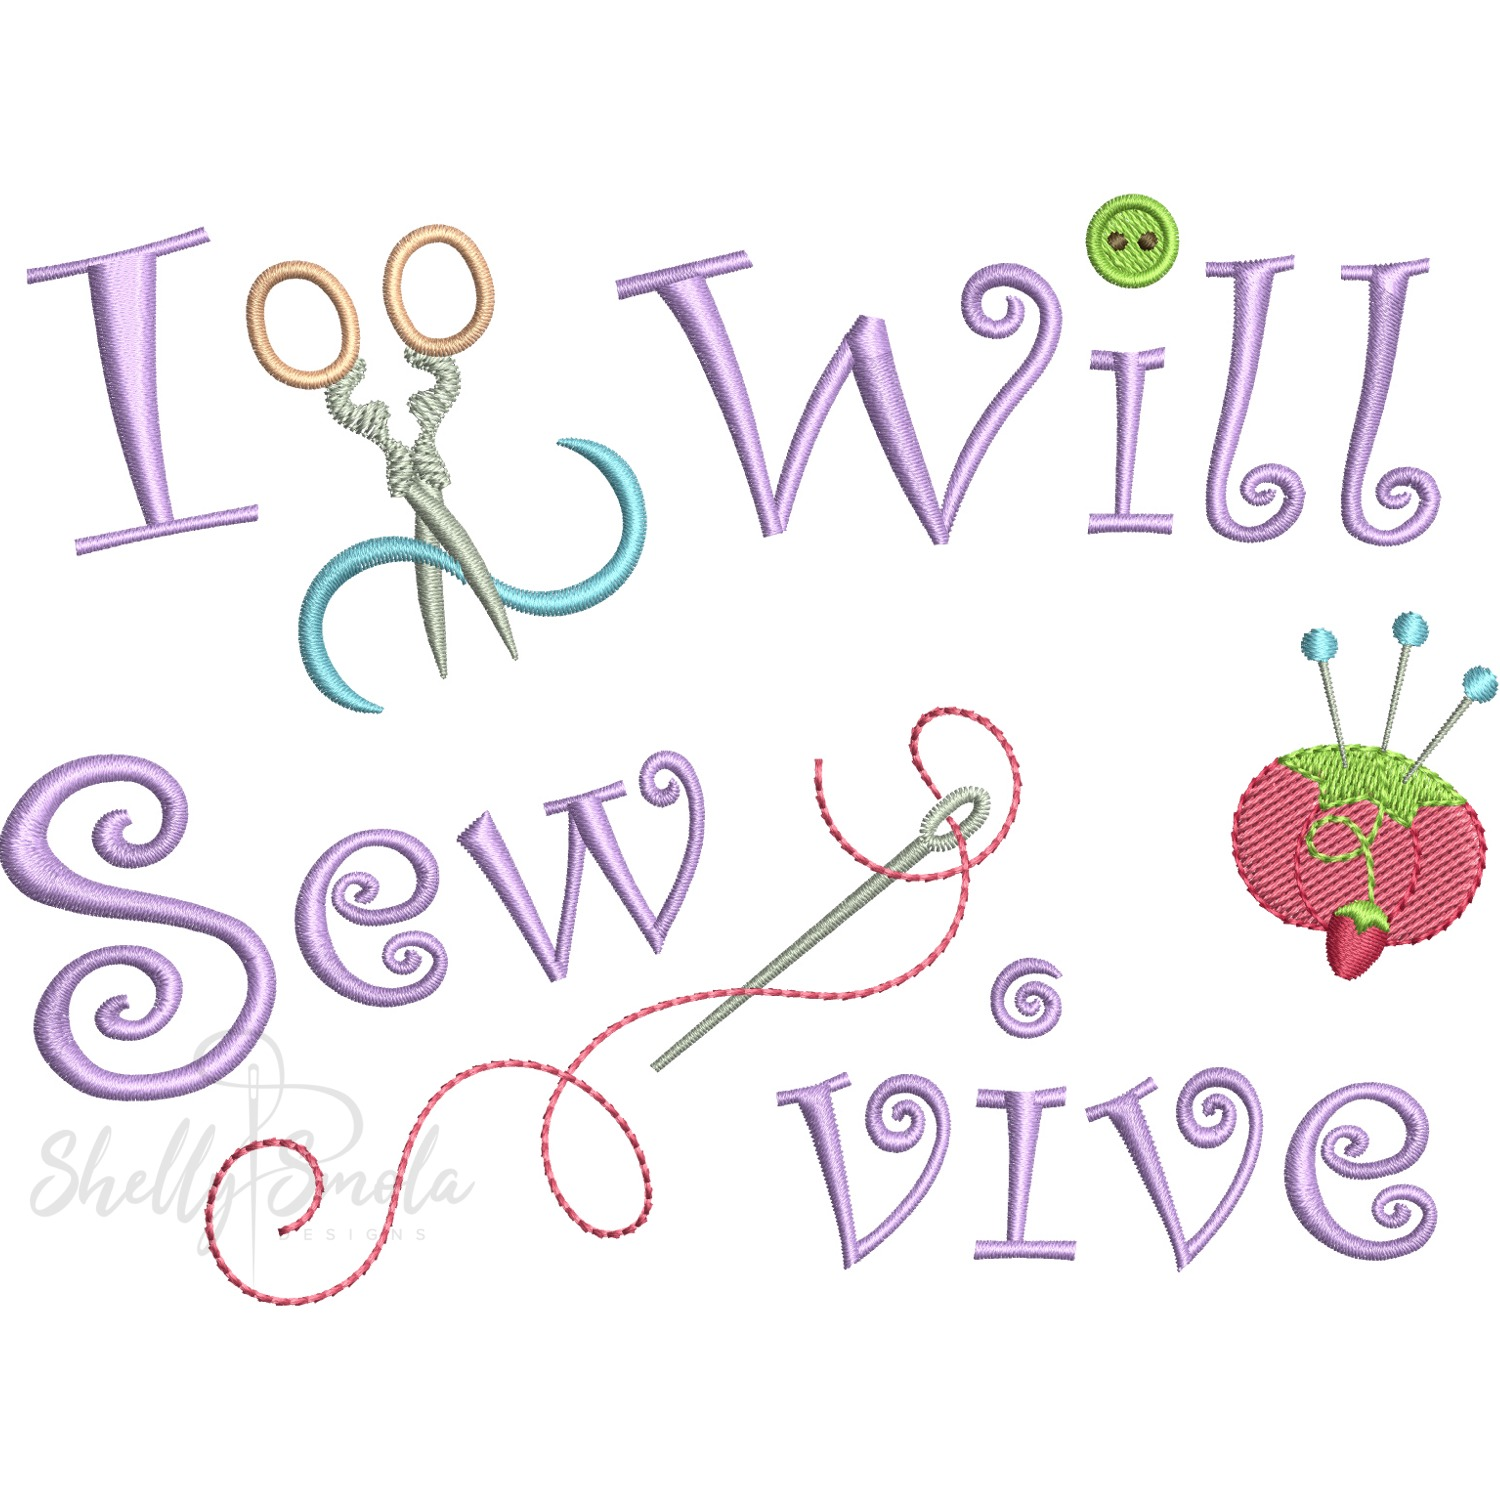 I Will SewVive by Shelly Smola